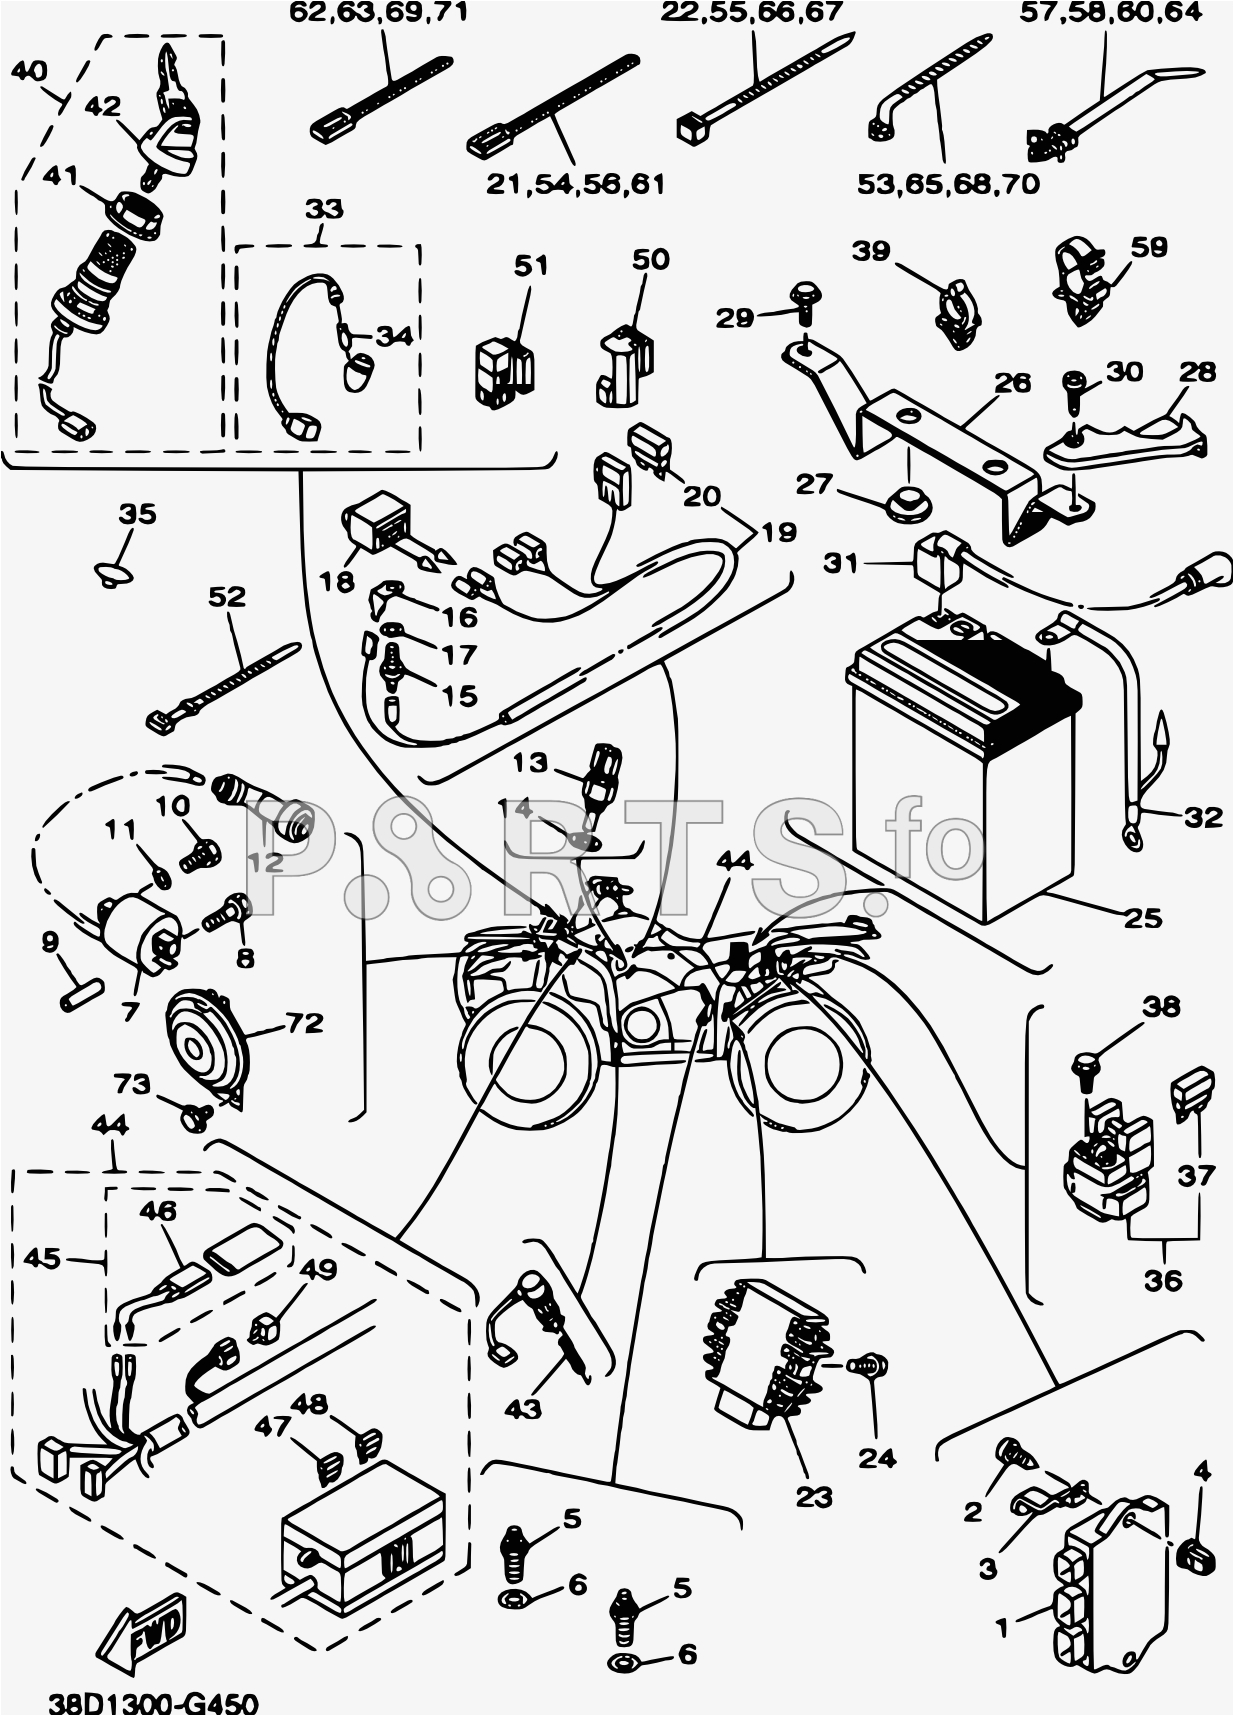 parts fo yamaha atv yfm350a grizzly 350 38d2 040 a 2009 yamaha 2009 350 grizzly wiring diagram